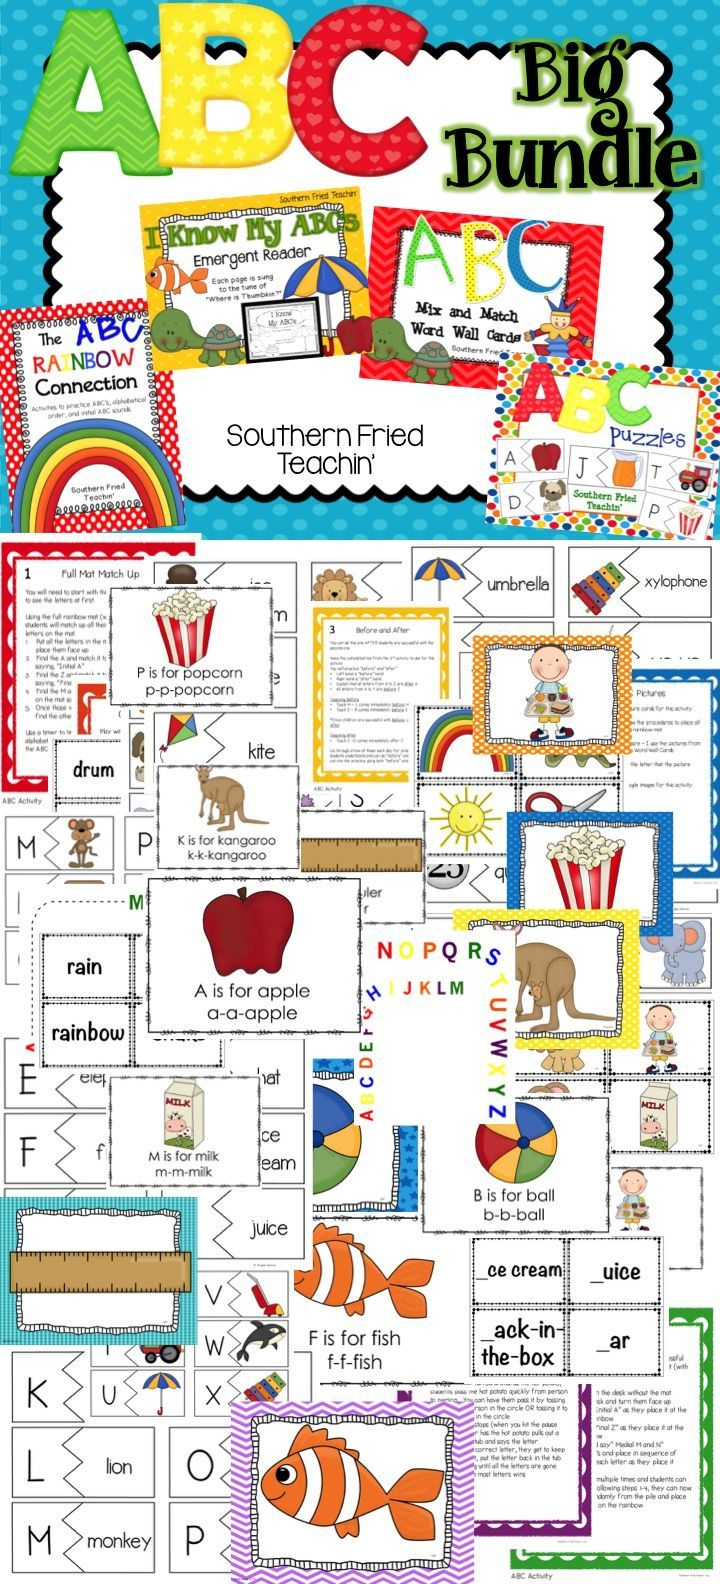 shoe stores in los angeles ABC Activities   Beginning Sounds   ABC Big Bundle   Save       4 different sets of activities to help students practice their ABCs and beginning sounds